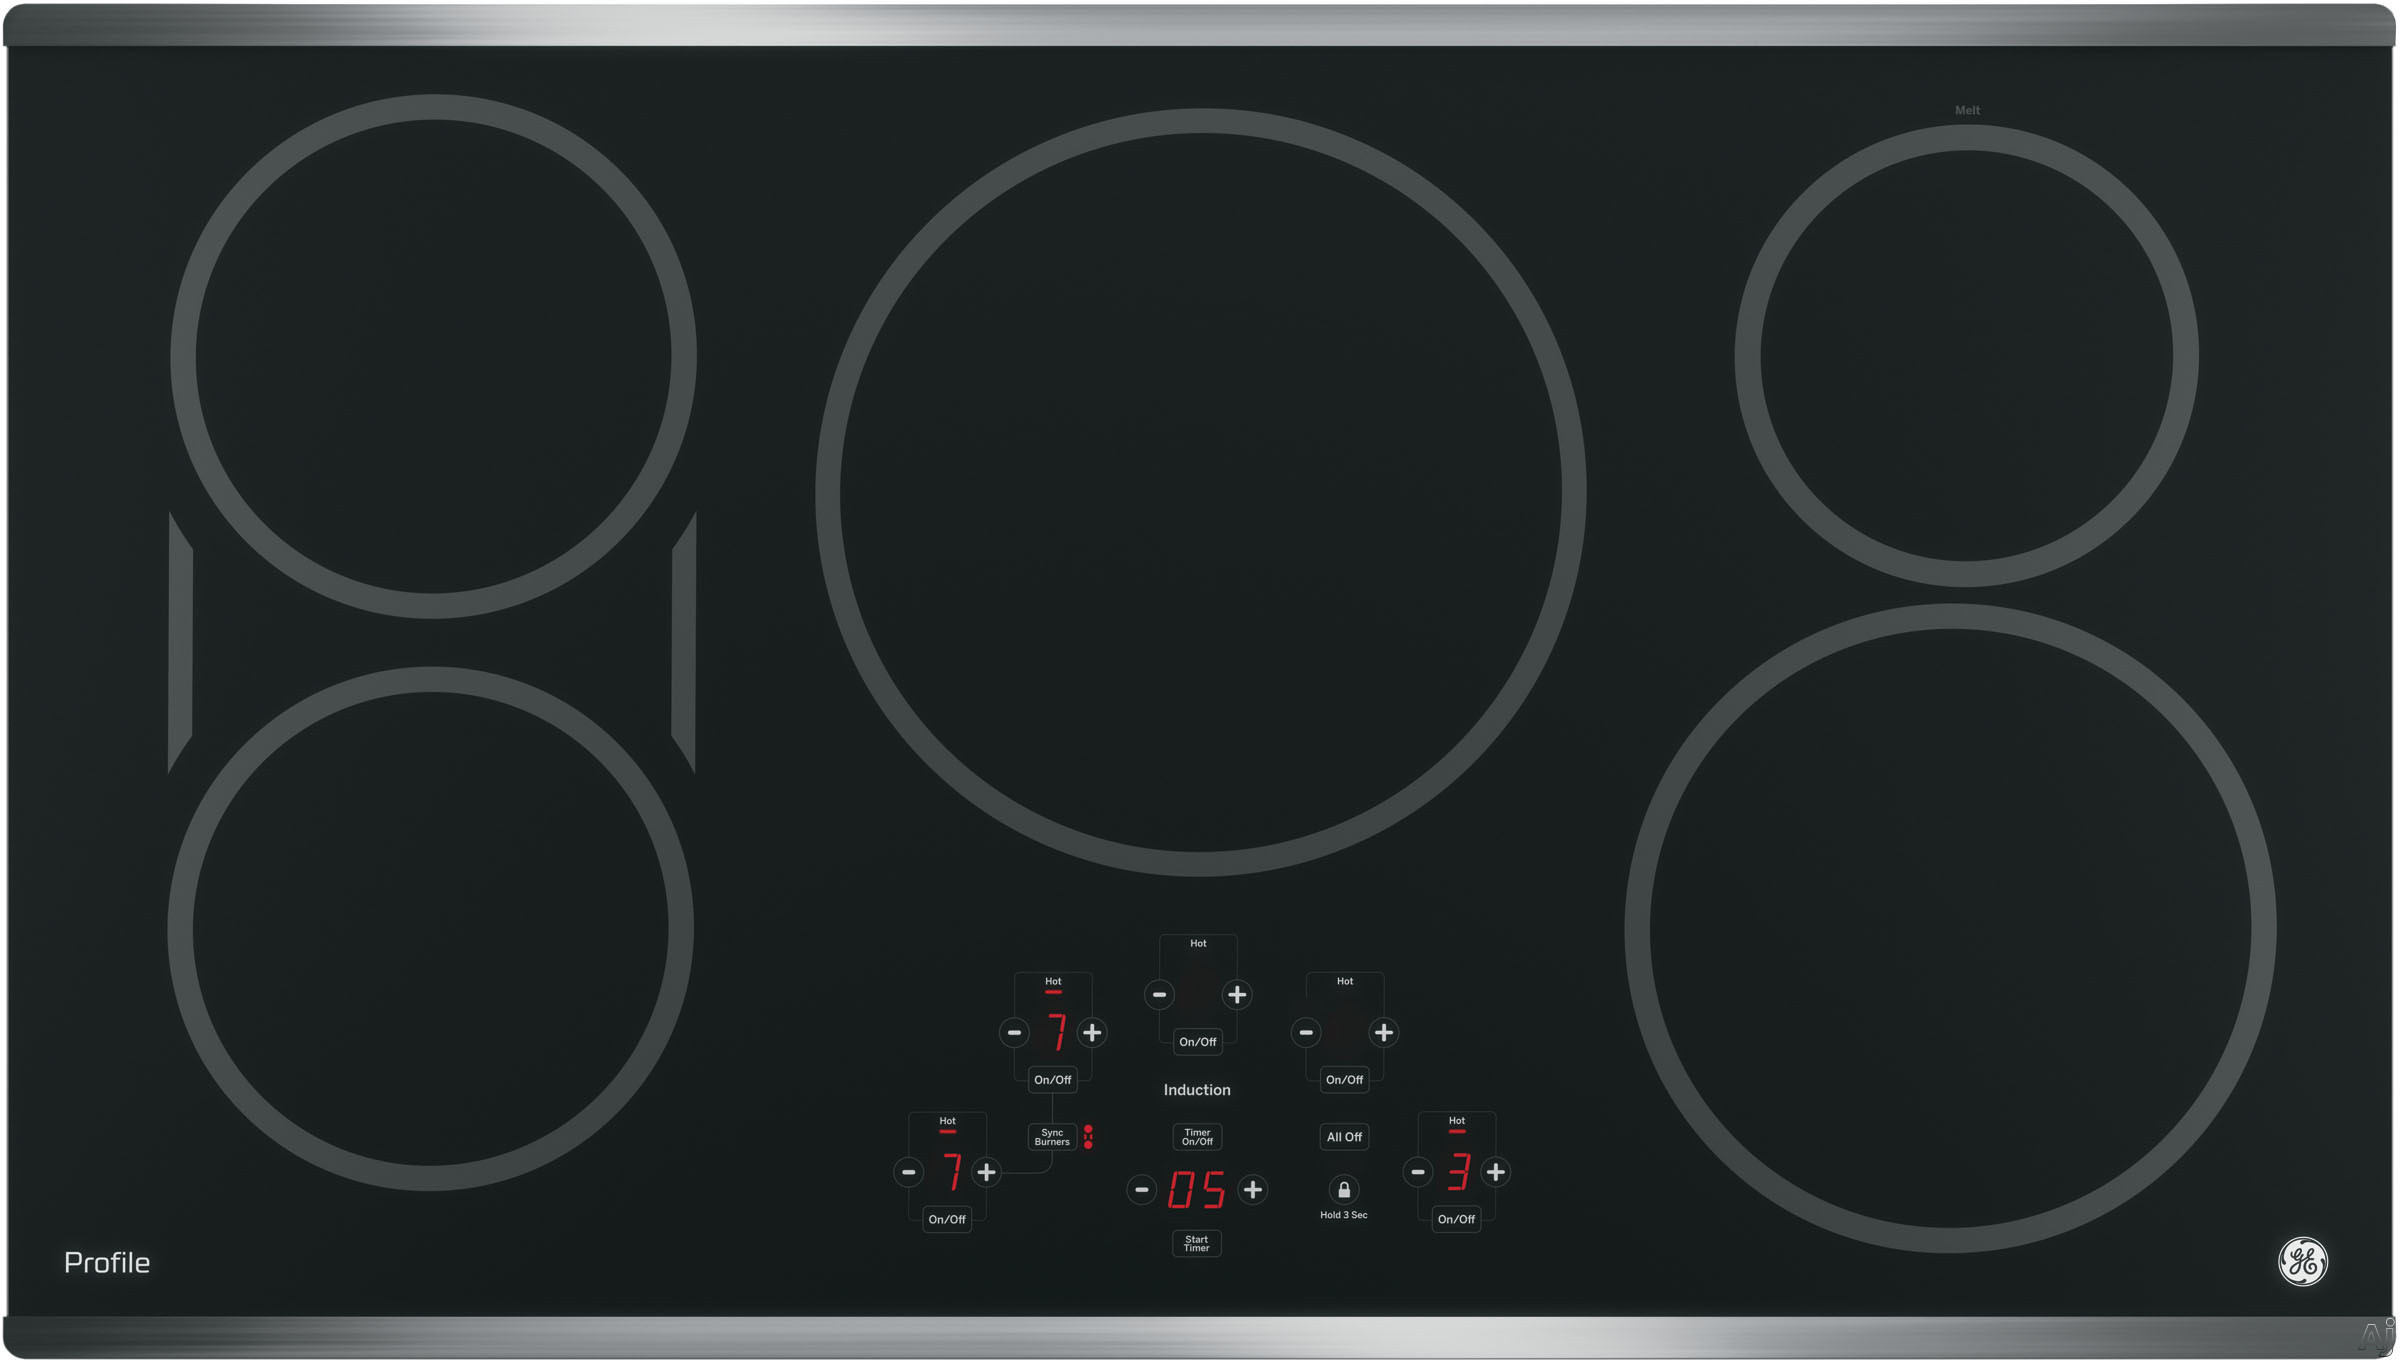 GE Profile PHP9036SJSS 36 Inch Induction Cooktop with 5 Induction Elements, 3,700-Watt Element, Pan Size Sensors, SyncBurners, Red LED Display, Kitchen Timer, ADA Compliant and GE Fits! Guarantee: Sta